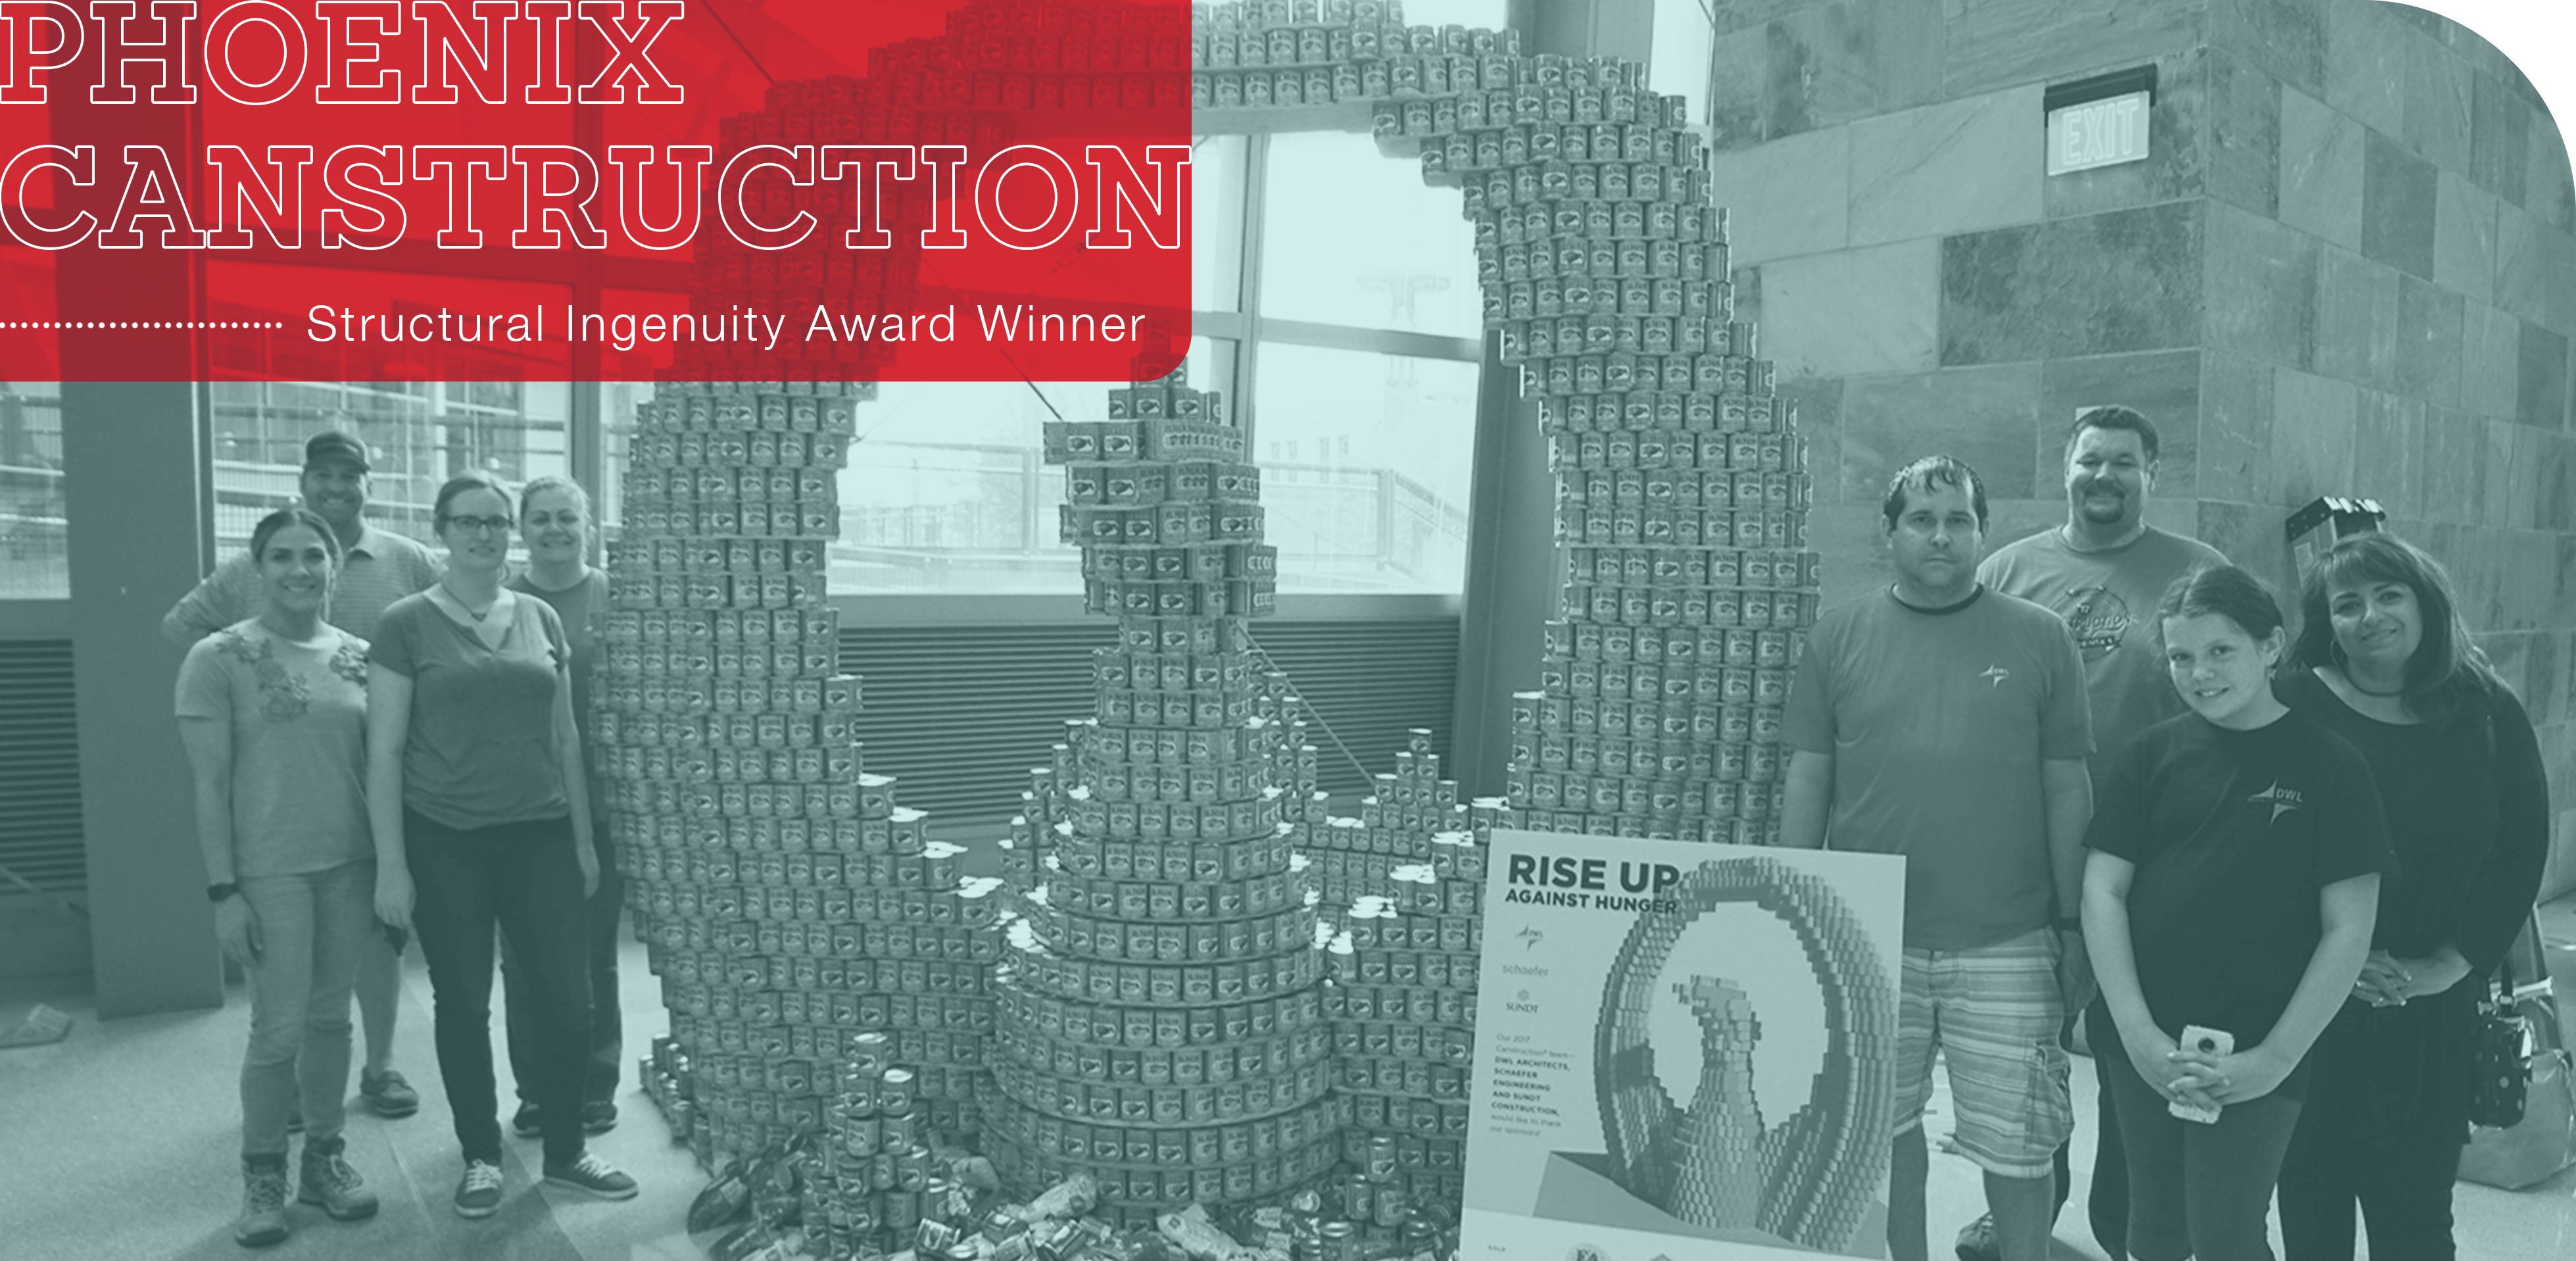 Phoenix Canstruction Structural Ingenuity Award Image